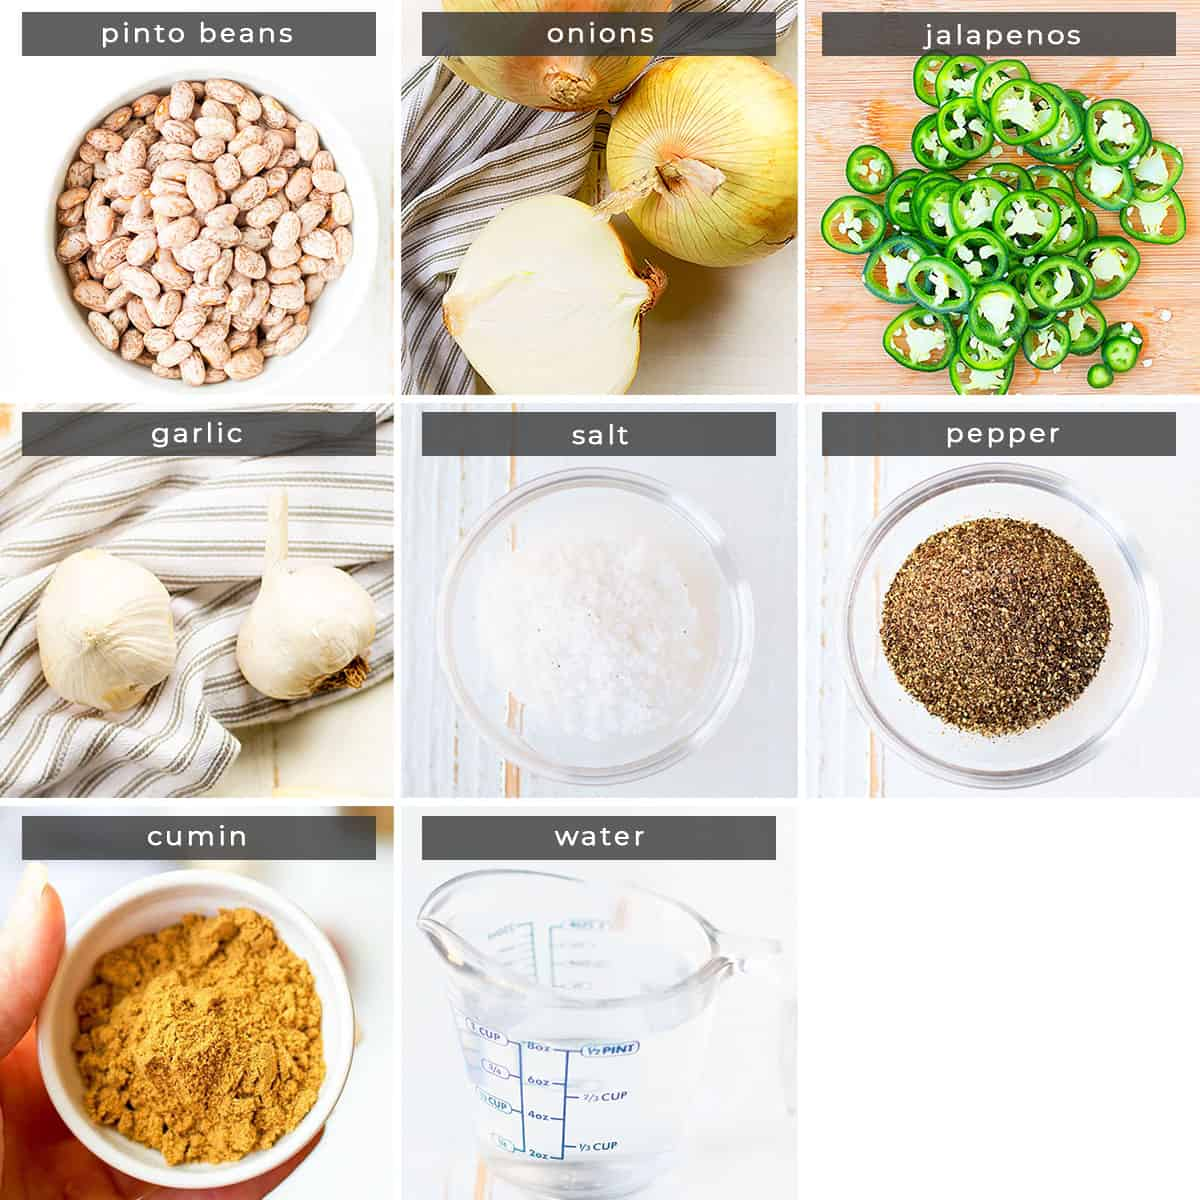 Image showing recipe ingredients pinto beans, onions, jalpenos, garlic, salt, pepper, cumin, and water.